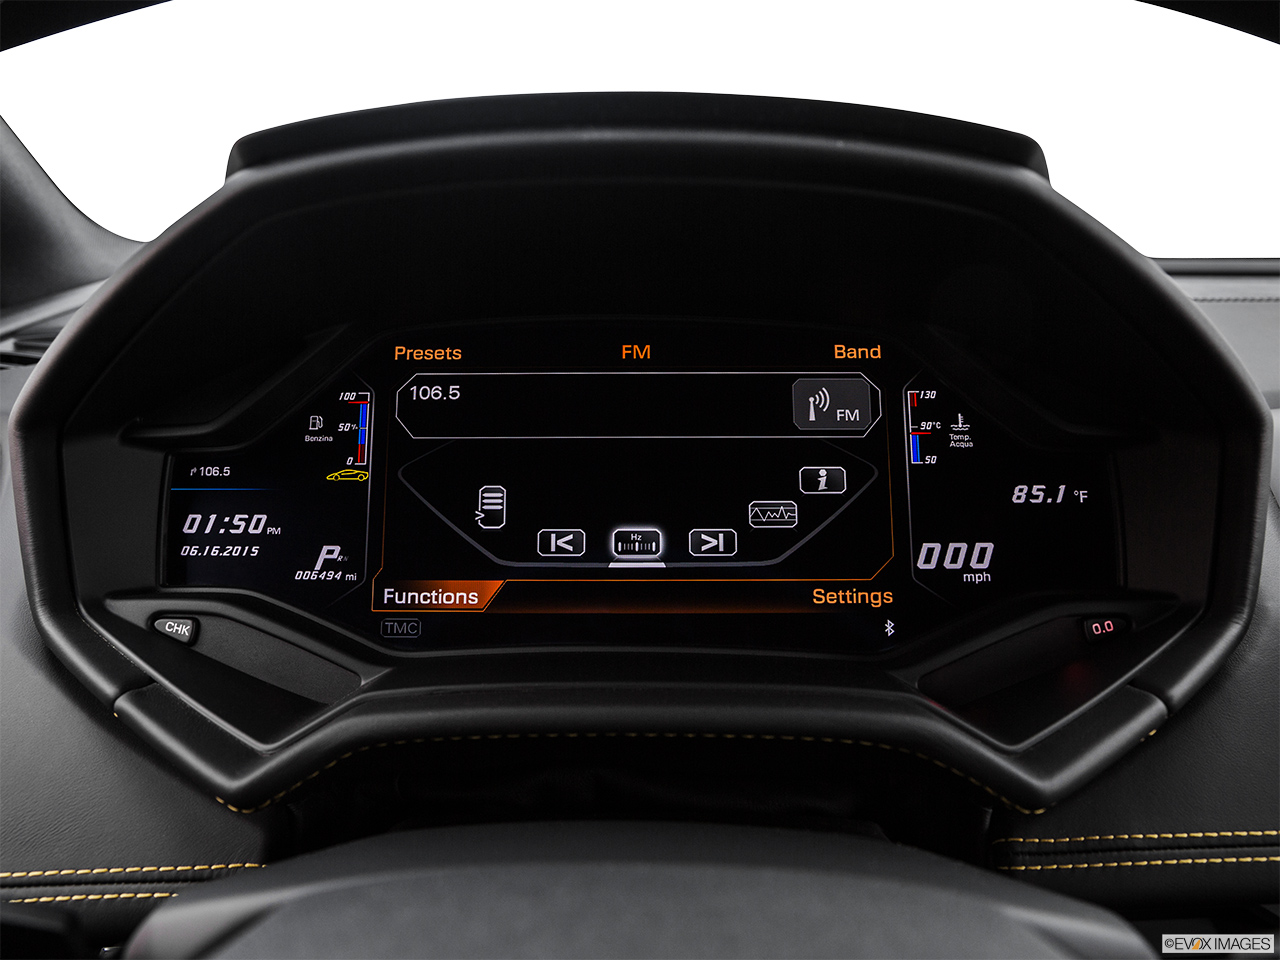 2015 Lamborghini Huracan LP 610-4 Closeup of radio head unit